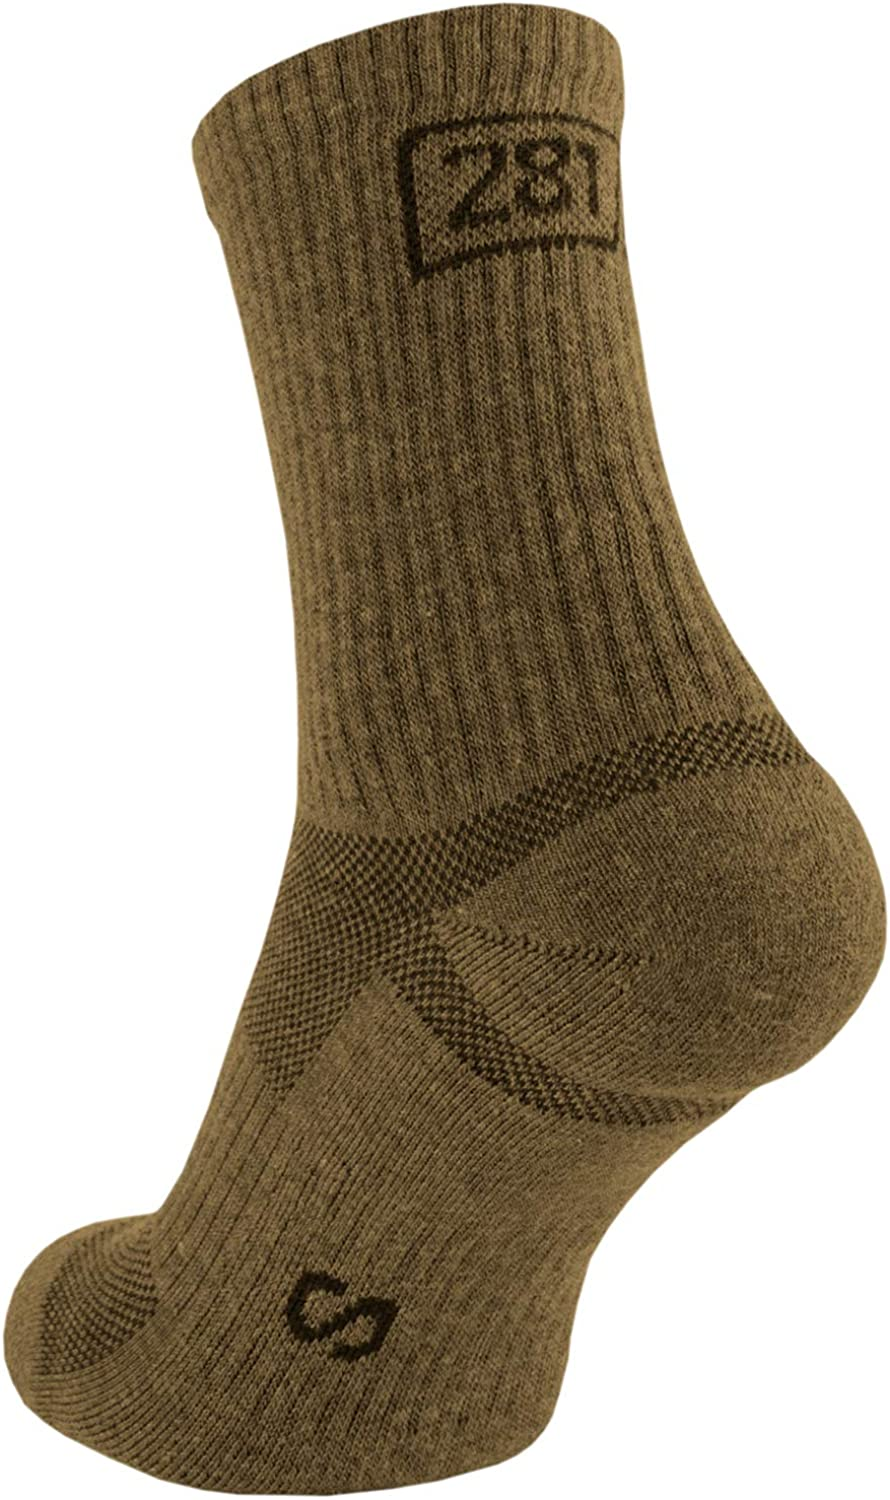 281Z Military Cotton Micro Crew Boot Socks - Cushioned Sole - Moisture Wicking - Hiking Outdoor (Coyote Brown)